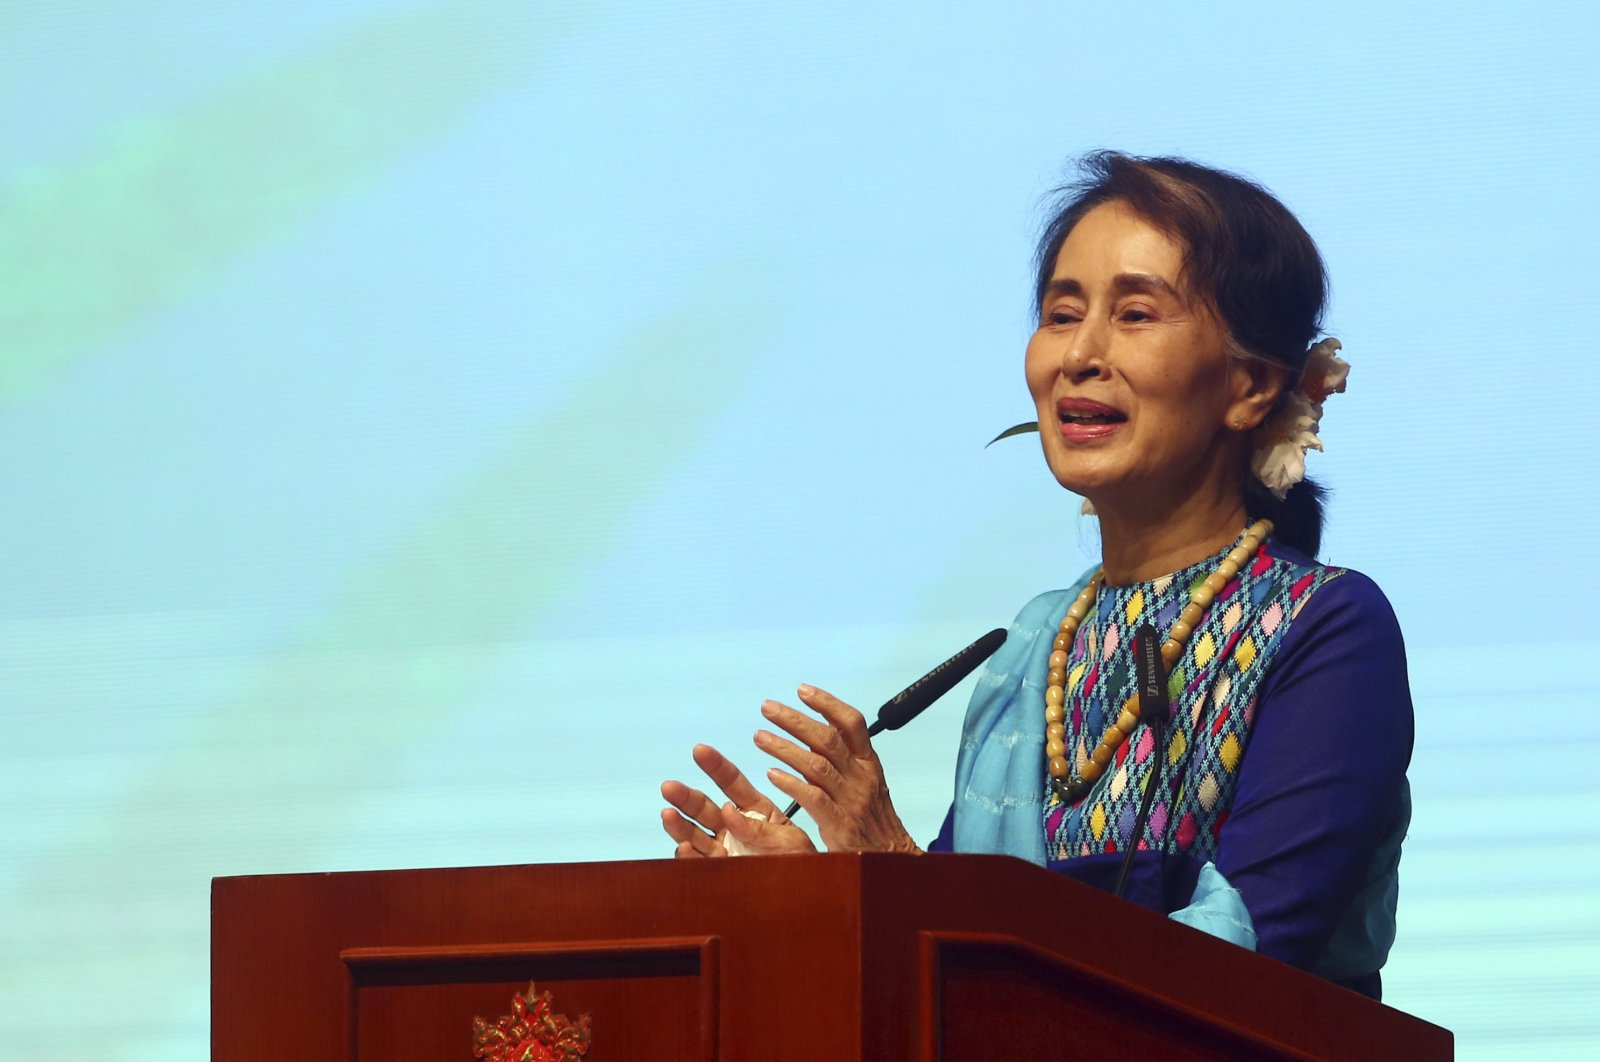 Myanmar's Leader Aung San Suu Kyi smiles as she delivers a speech during the meeting with the country's business leaders at the Myanmar International Convention Center in Naypyitaw, Myanmar, Monday, Aug. 27, 2018. (AP Photo)